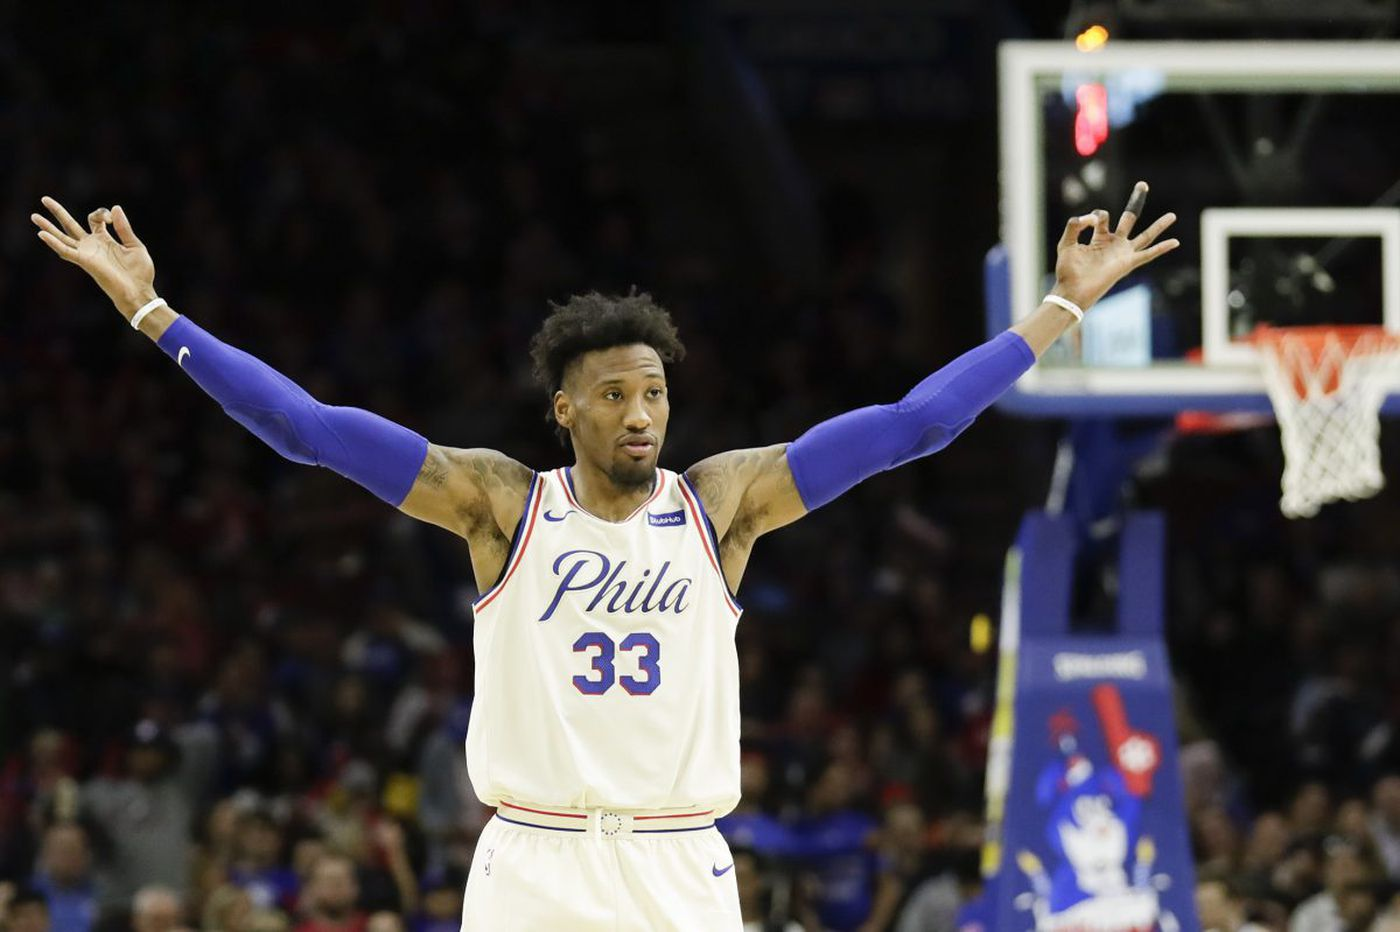 Sixers-Heat, other first-round NBA playoff capsules: Stats, trends, odds and picks